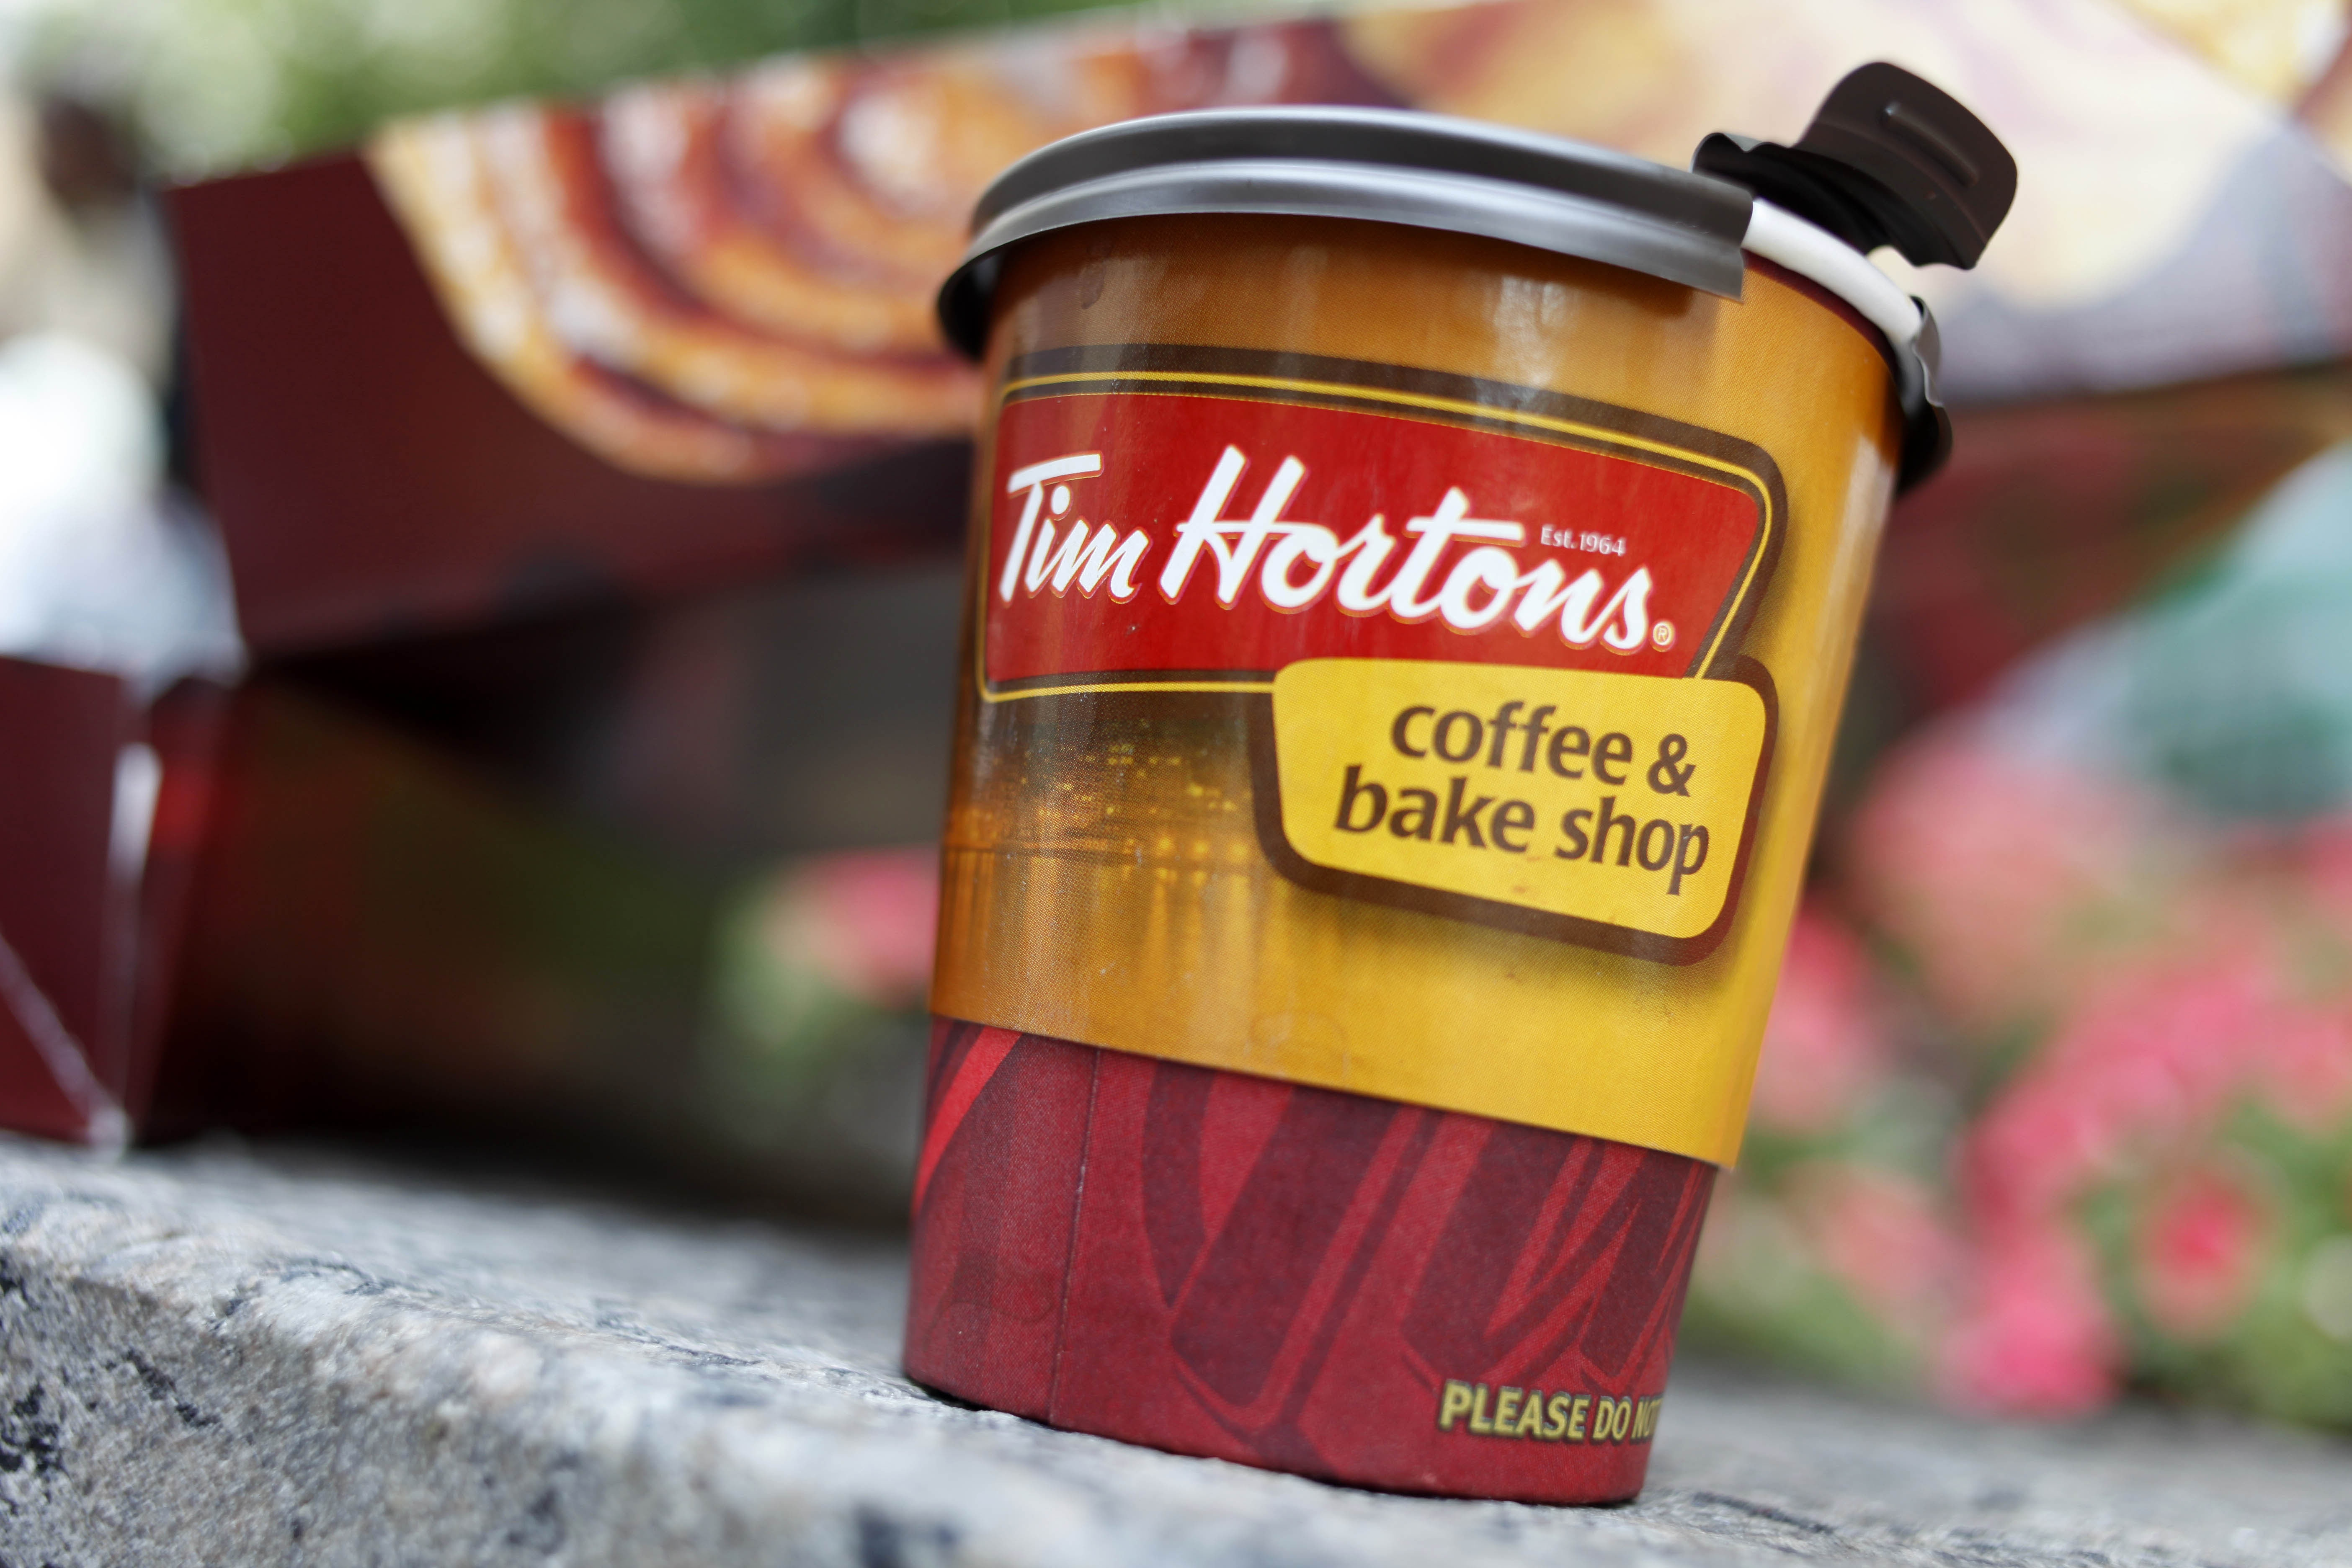 Burger King is in talks to buy the Canada-based doughnut chain Tim Hortons. If the deal goes through, Burger King corporate headquarters would move to Canada to take advantage of its lower corporate tax rate. (AP Photo/Seth Wenig, File)